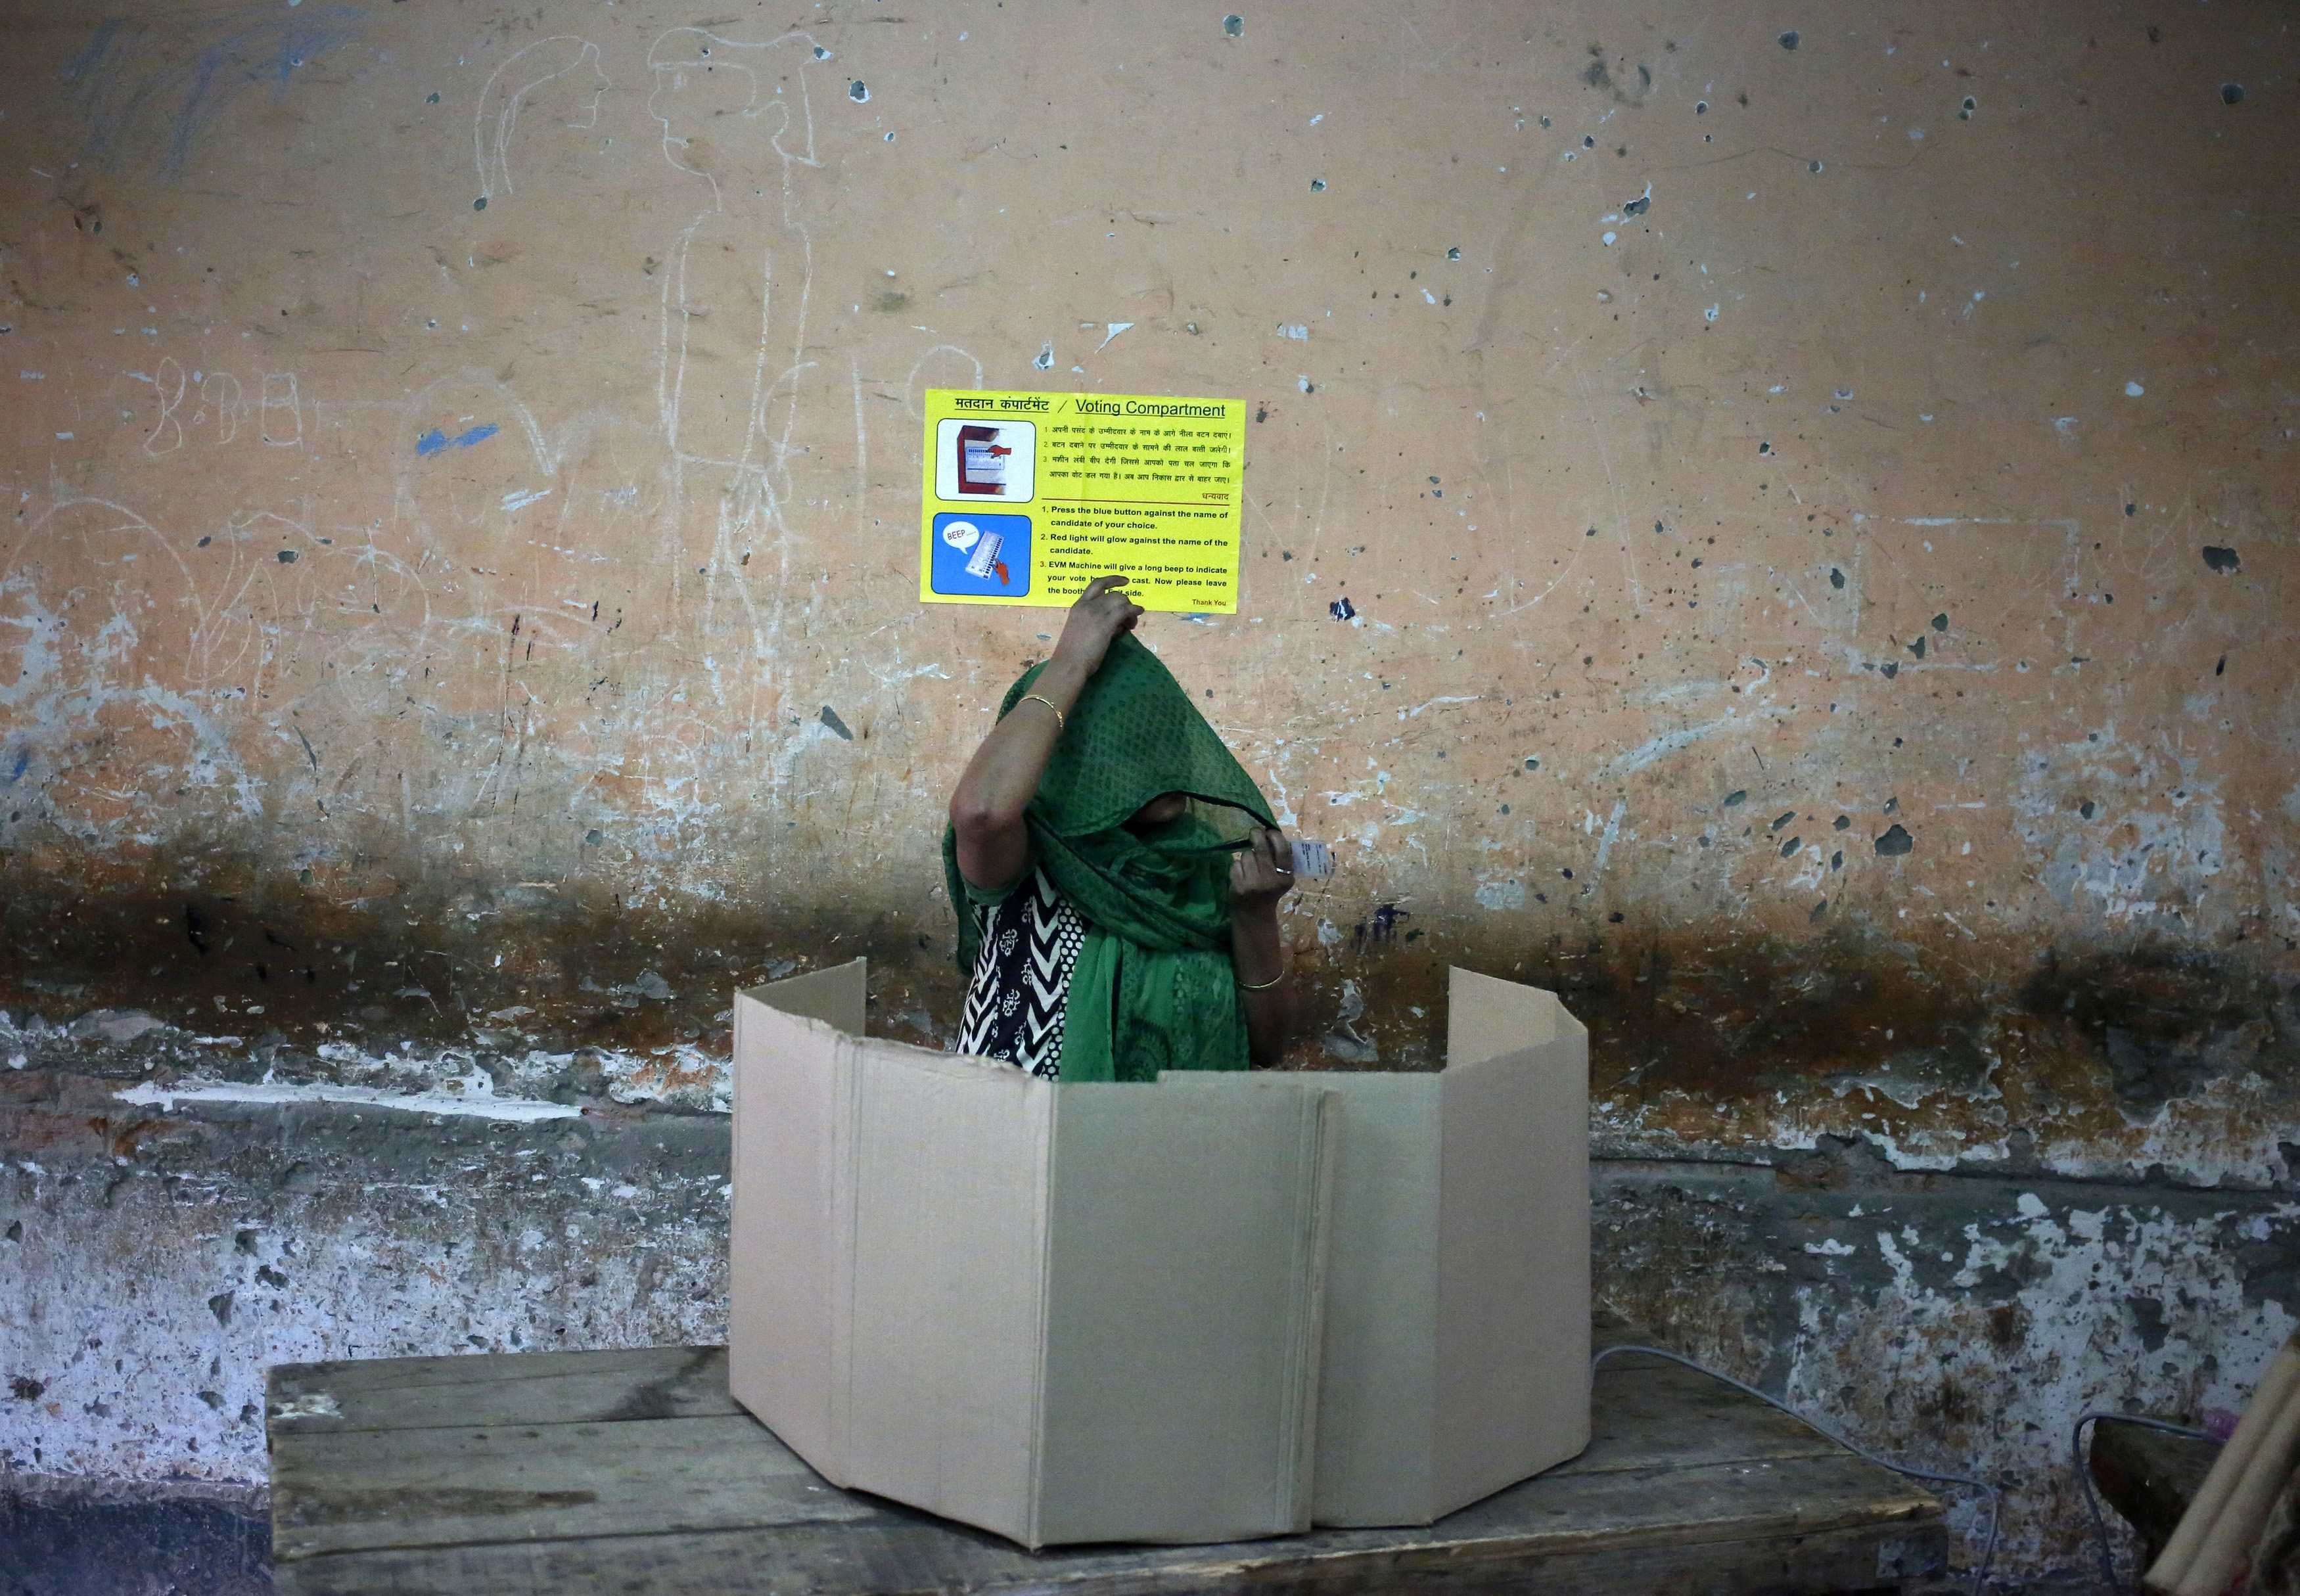 1.A voter prepares to cast her vote at a polling station during the state assembly election in New Delhi February 7, 2015. Photo: Reuters